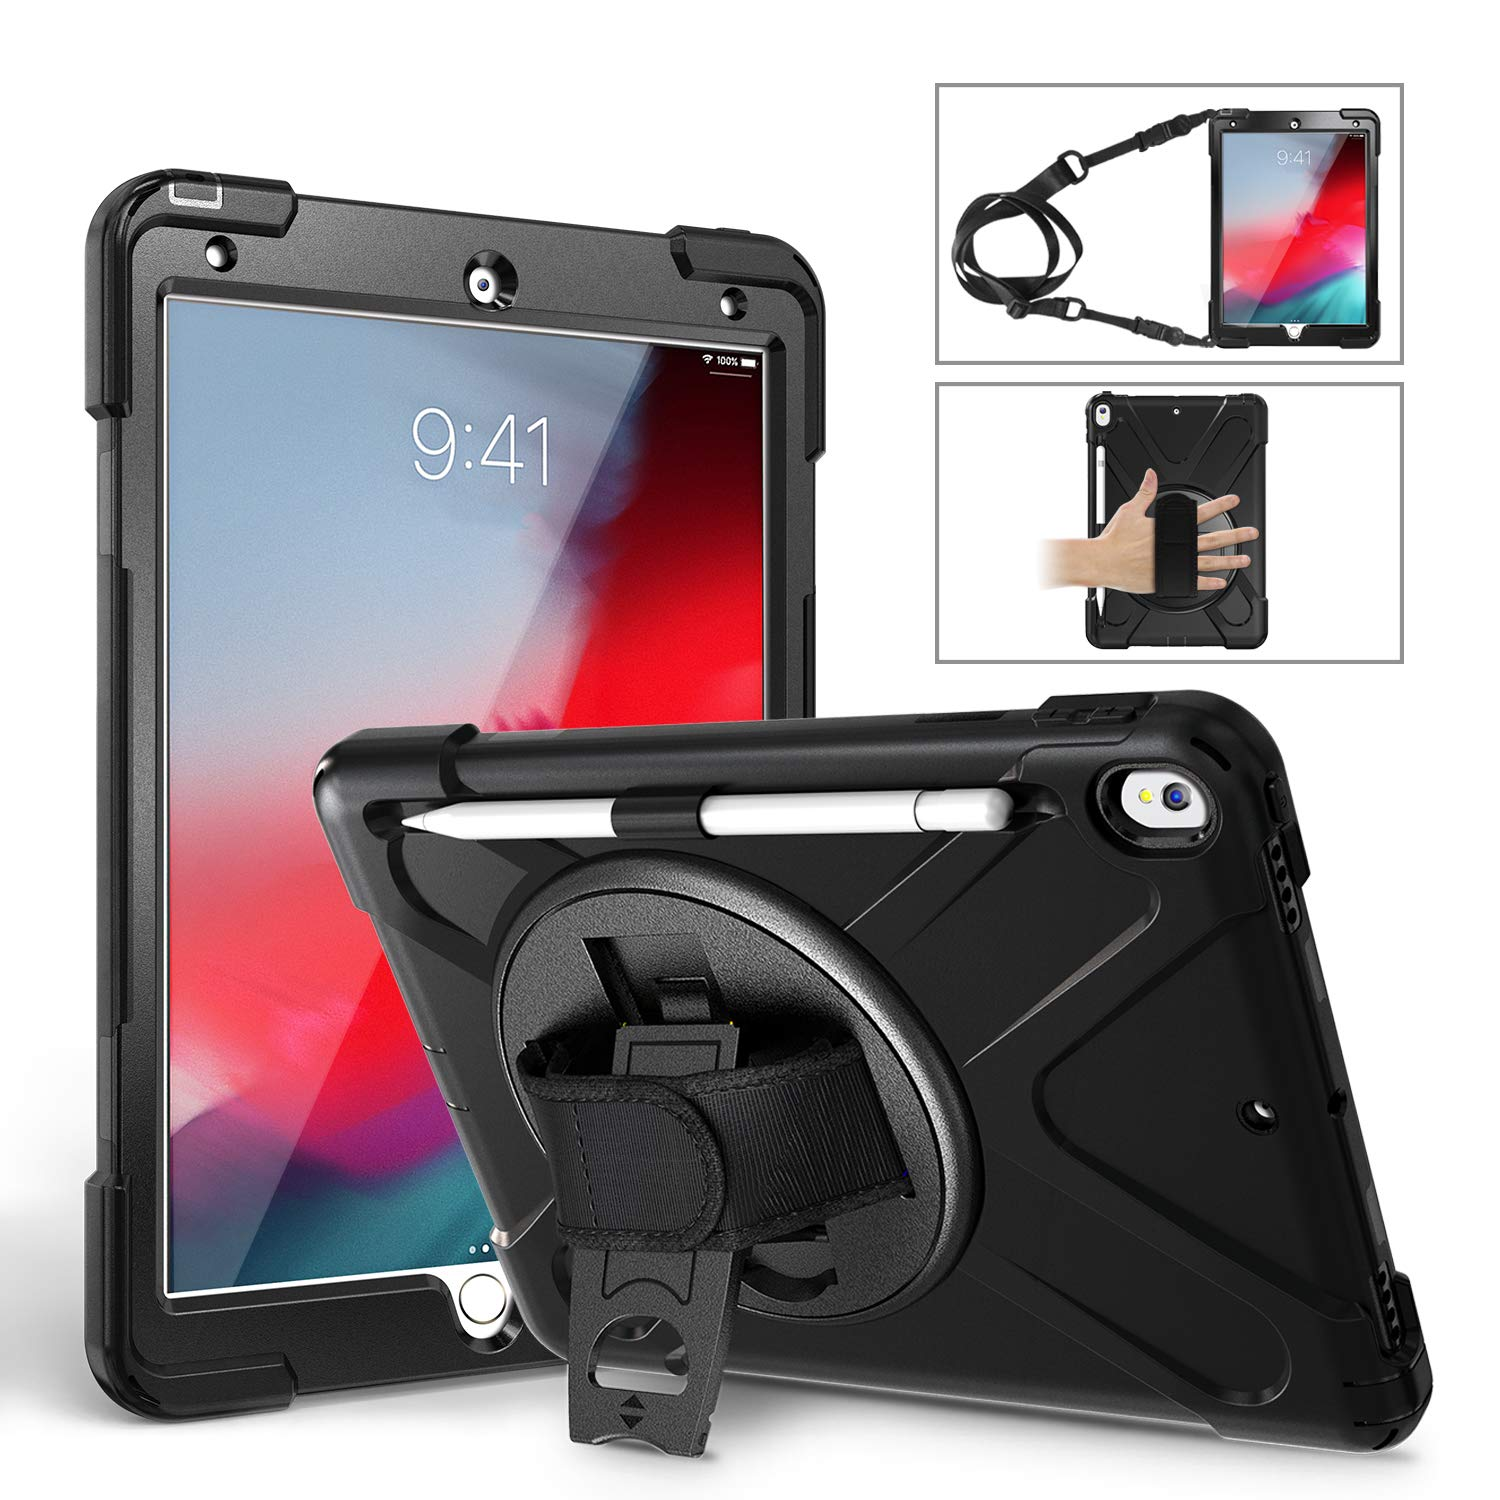 iPad Pro 10.5 Case 2017/iPad Air 3 Case 2019 with Screen Protector,TSQ Heavy Duty Shockproof Durable Hard Rugged Protective Case with Pencil Holder/Hand Strap/Stand/Shoulder Strap for iPad 10.5,Black